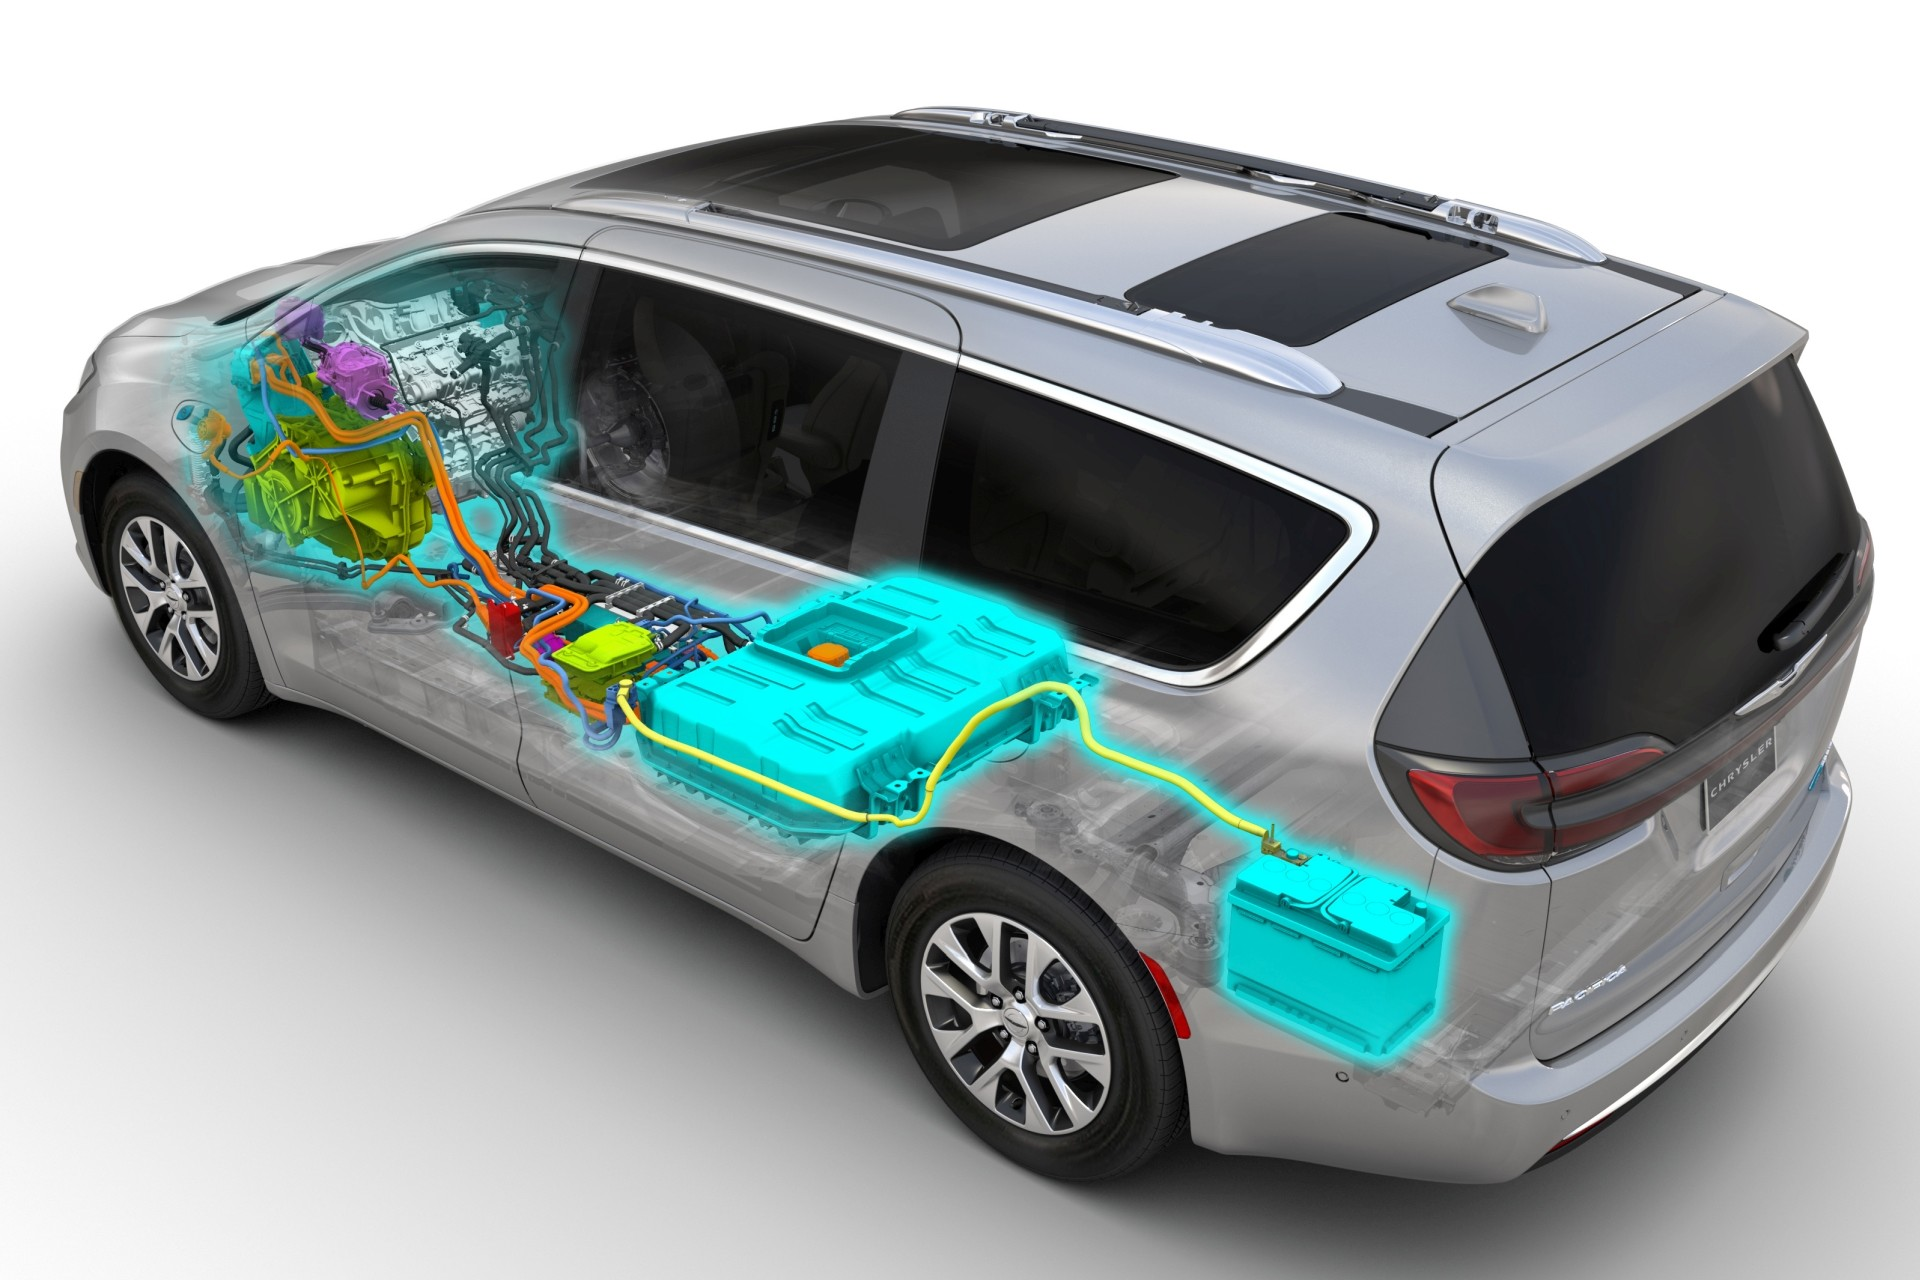 An elevated view of a Billet Metallic Pacifica Hybrid with an overlaid illustration of the vehicle's 3.6L Pentastar VVT V6 Hybrid engine and 16-kWh lithium battery.